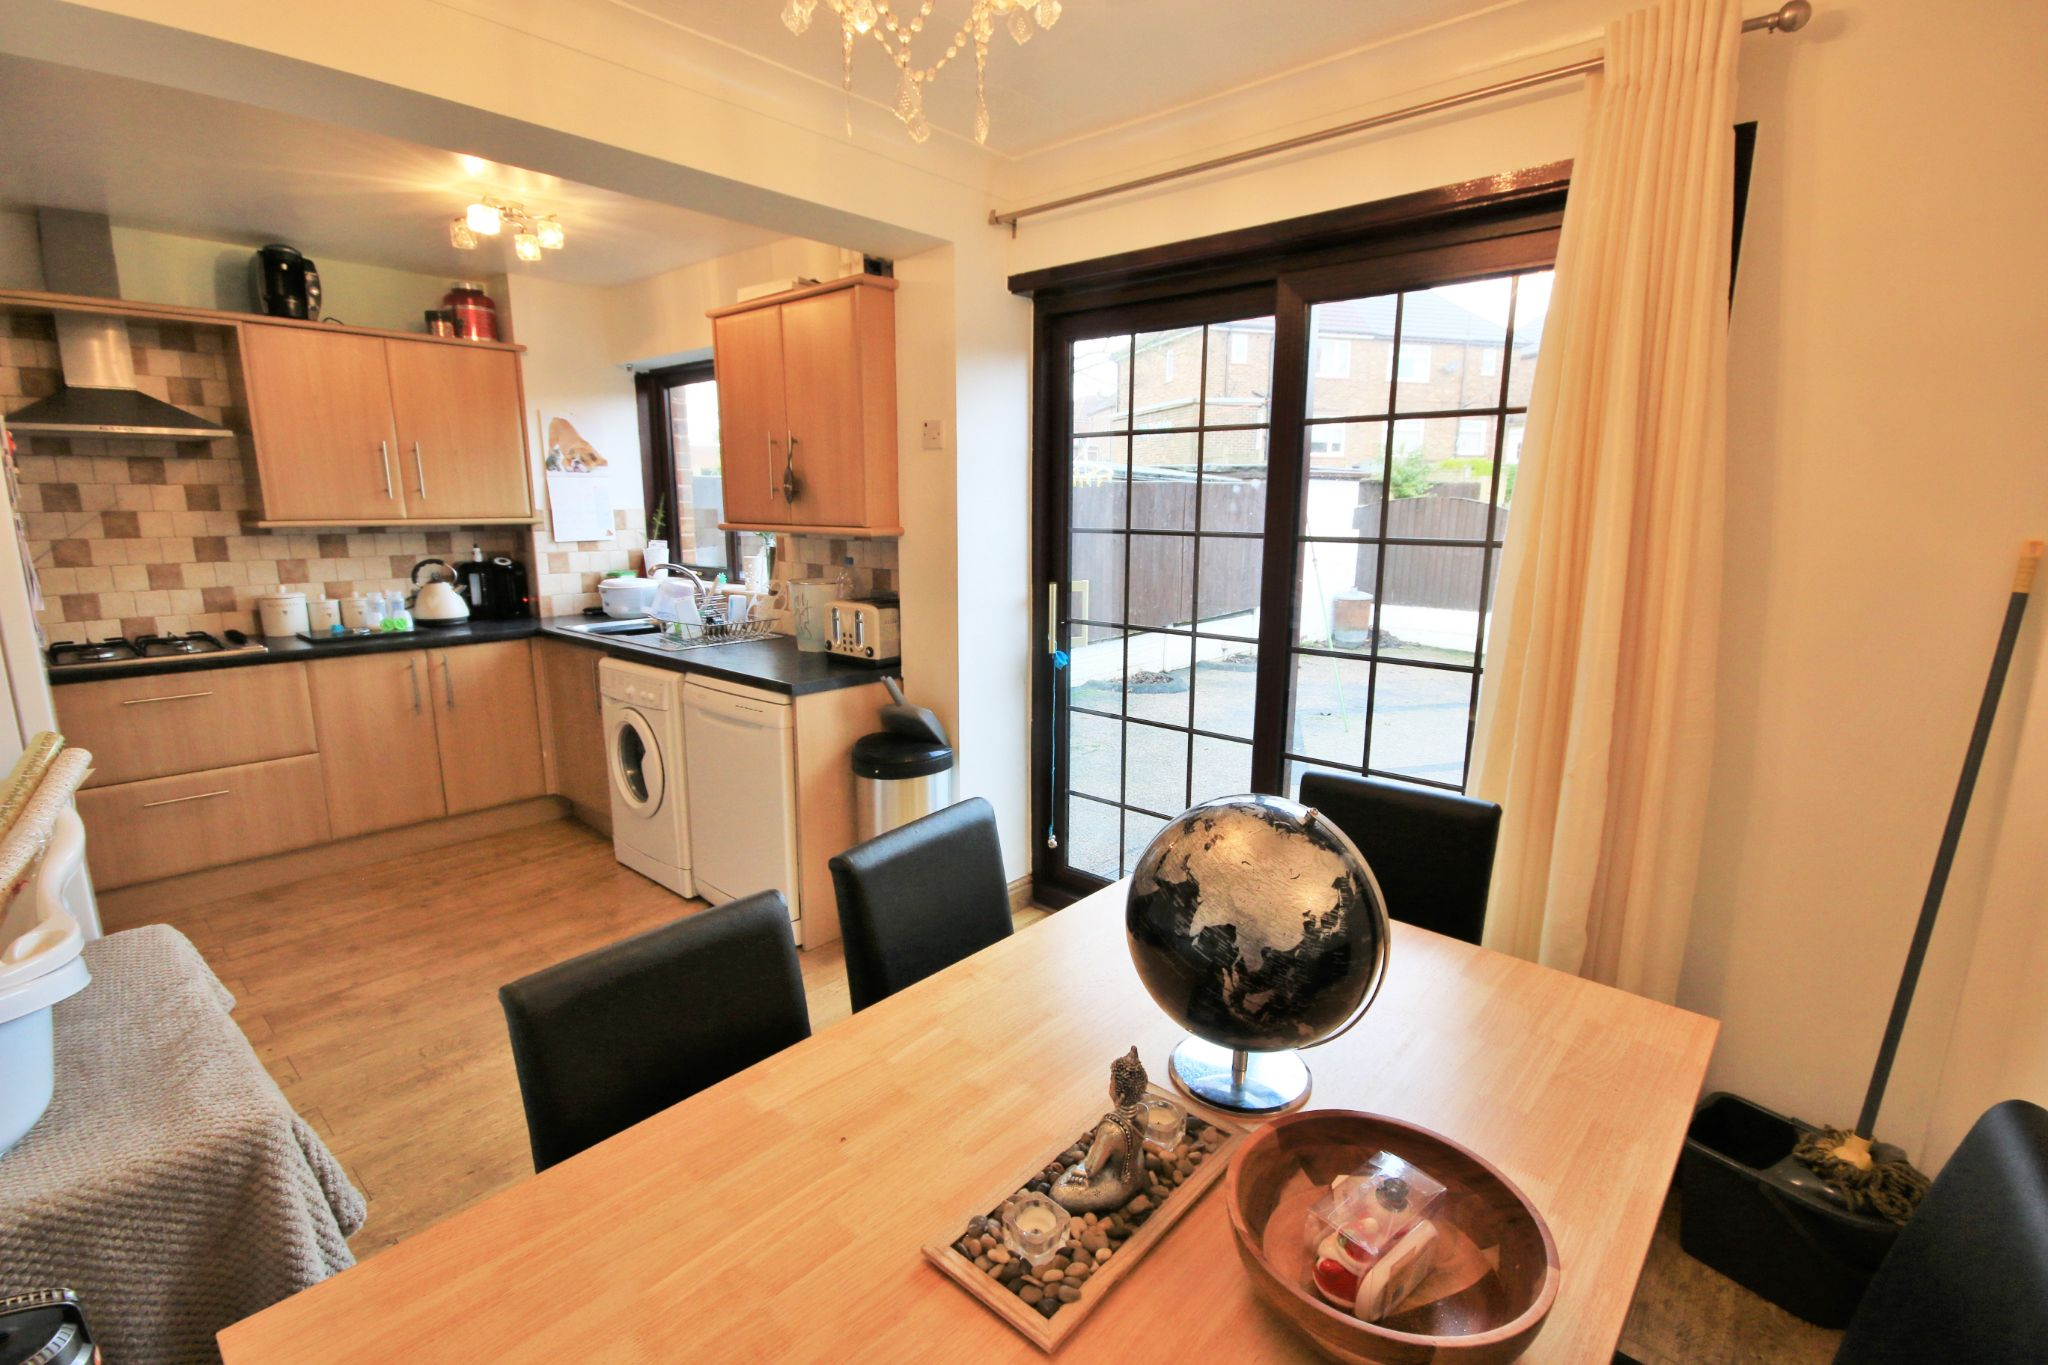 3 Bedroom Semi-detached House For Sale - Photograph 5